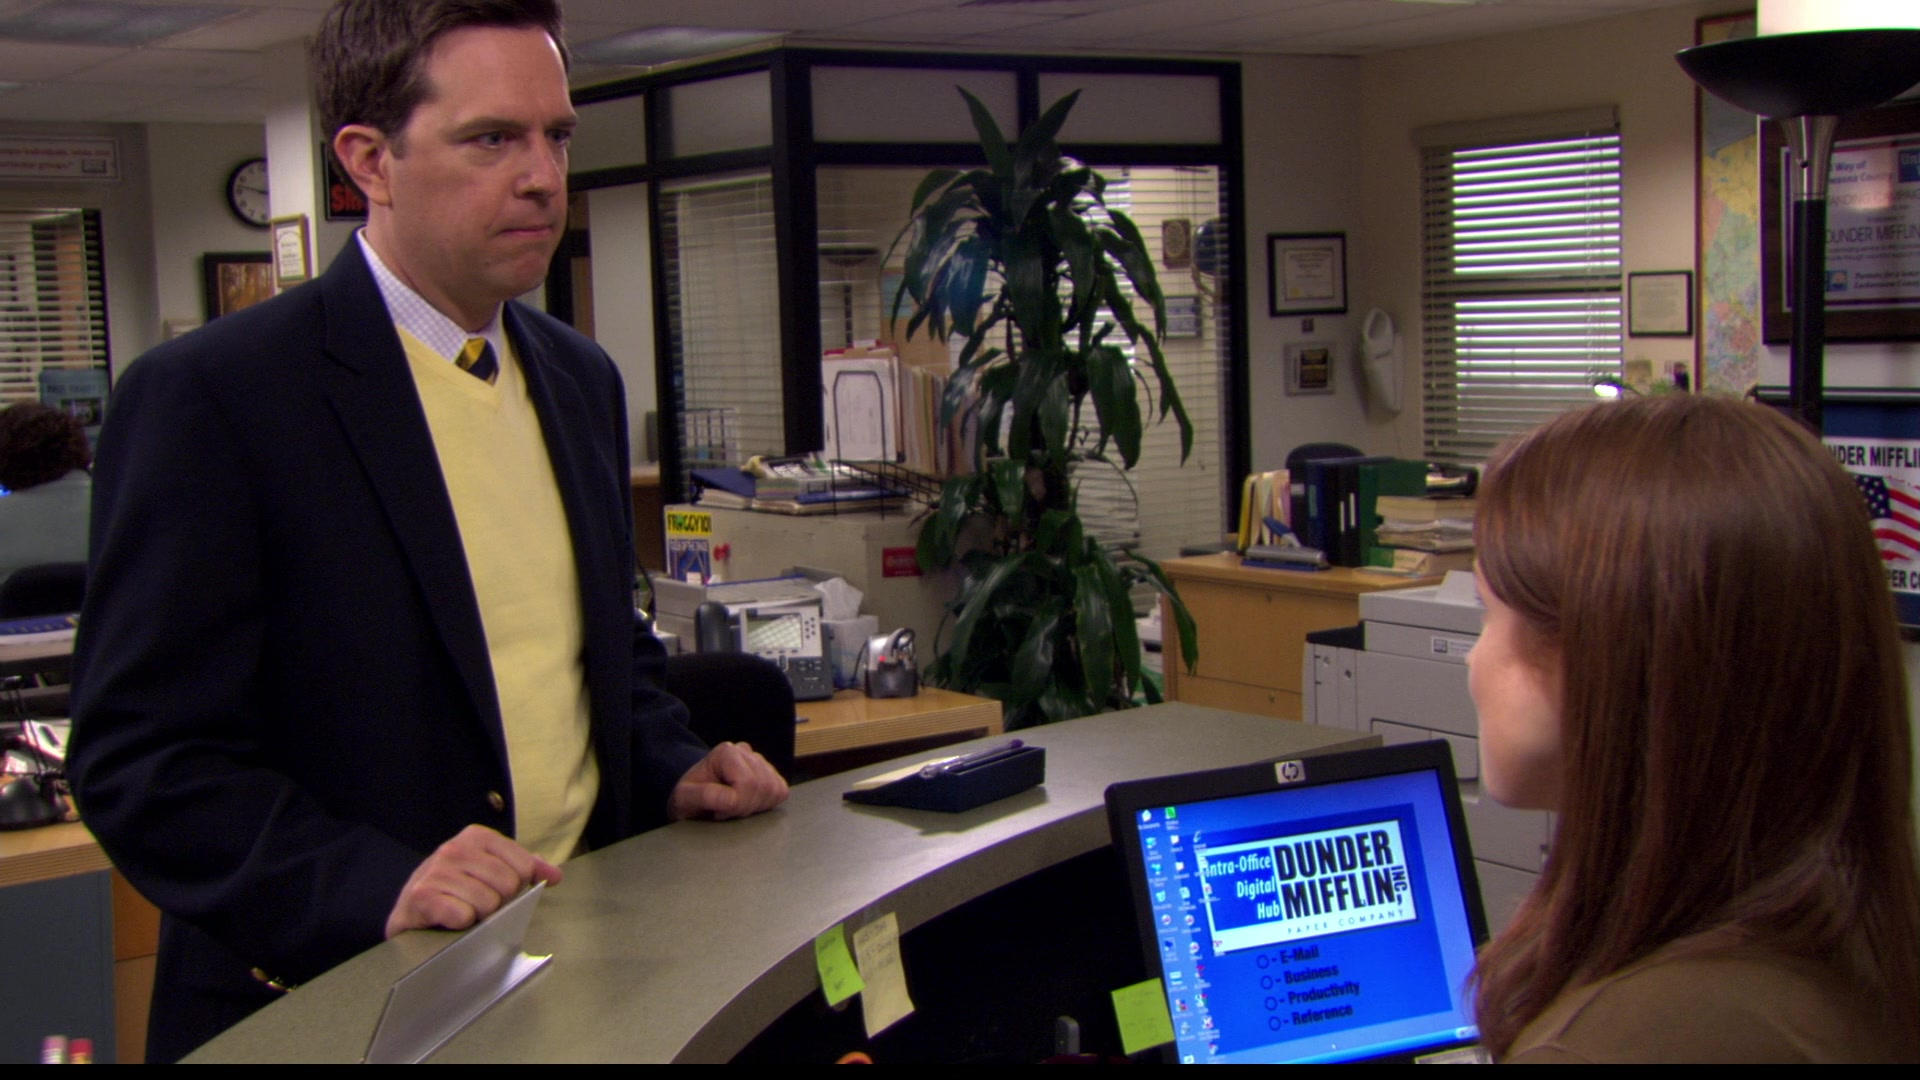 Hp Monitor Used By Ellie Kemper Erin Hannon In The Office